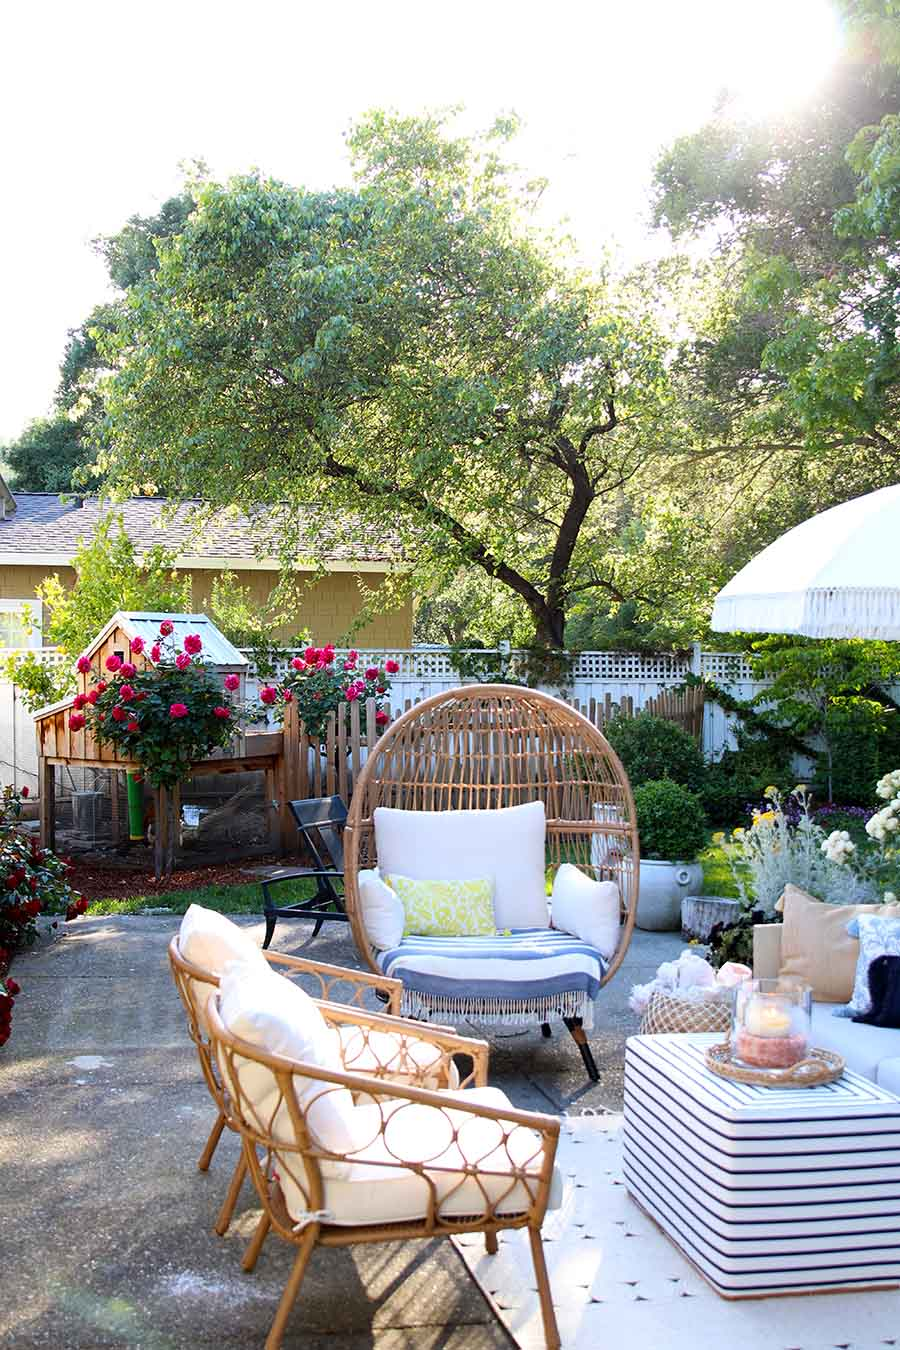 Outdoor decorating Ideas: My Summer Porch and Patio | Summer ...